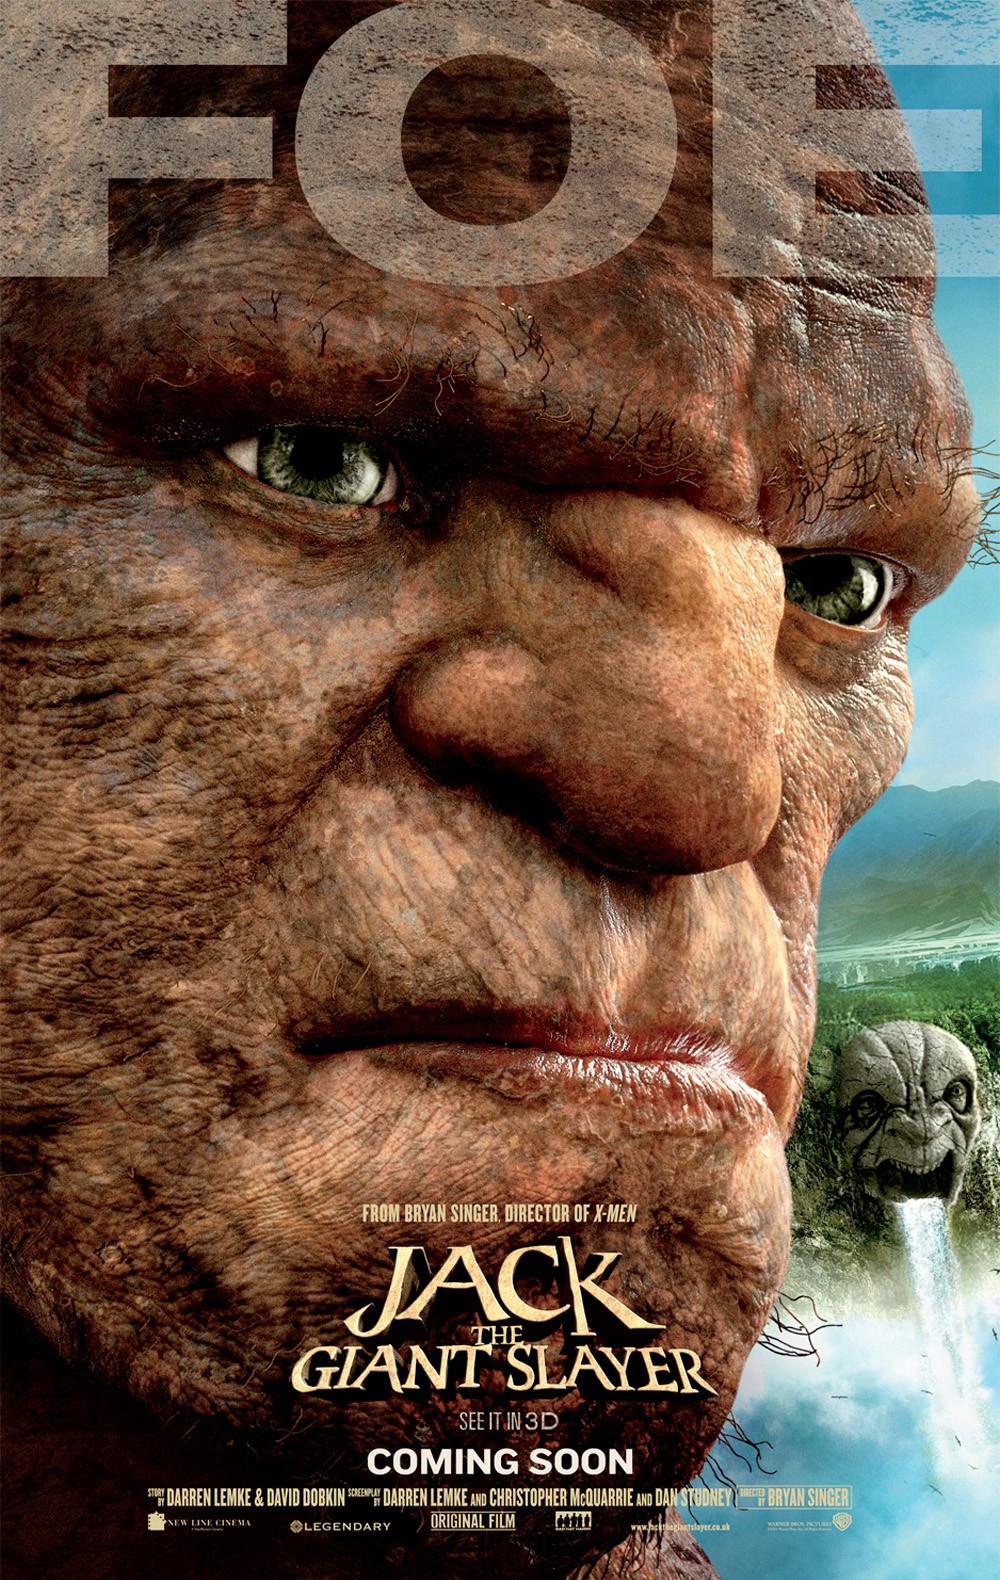 Jack the Giant Slayer - Movie Poster #5 (Original)